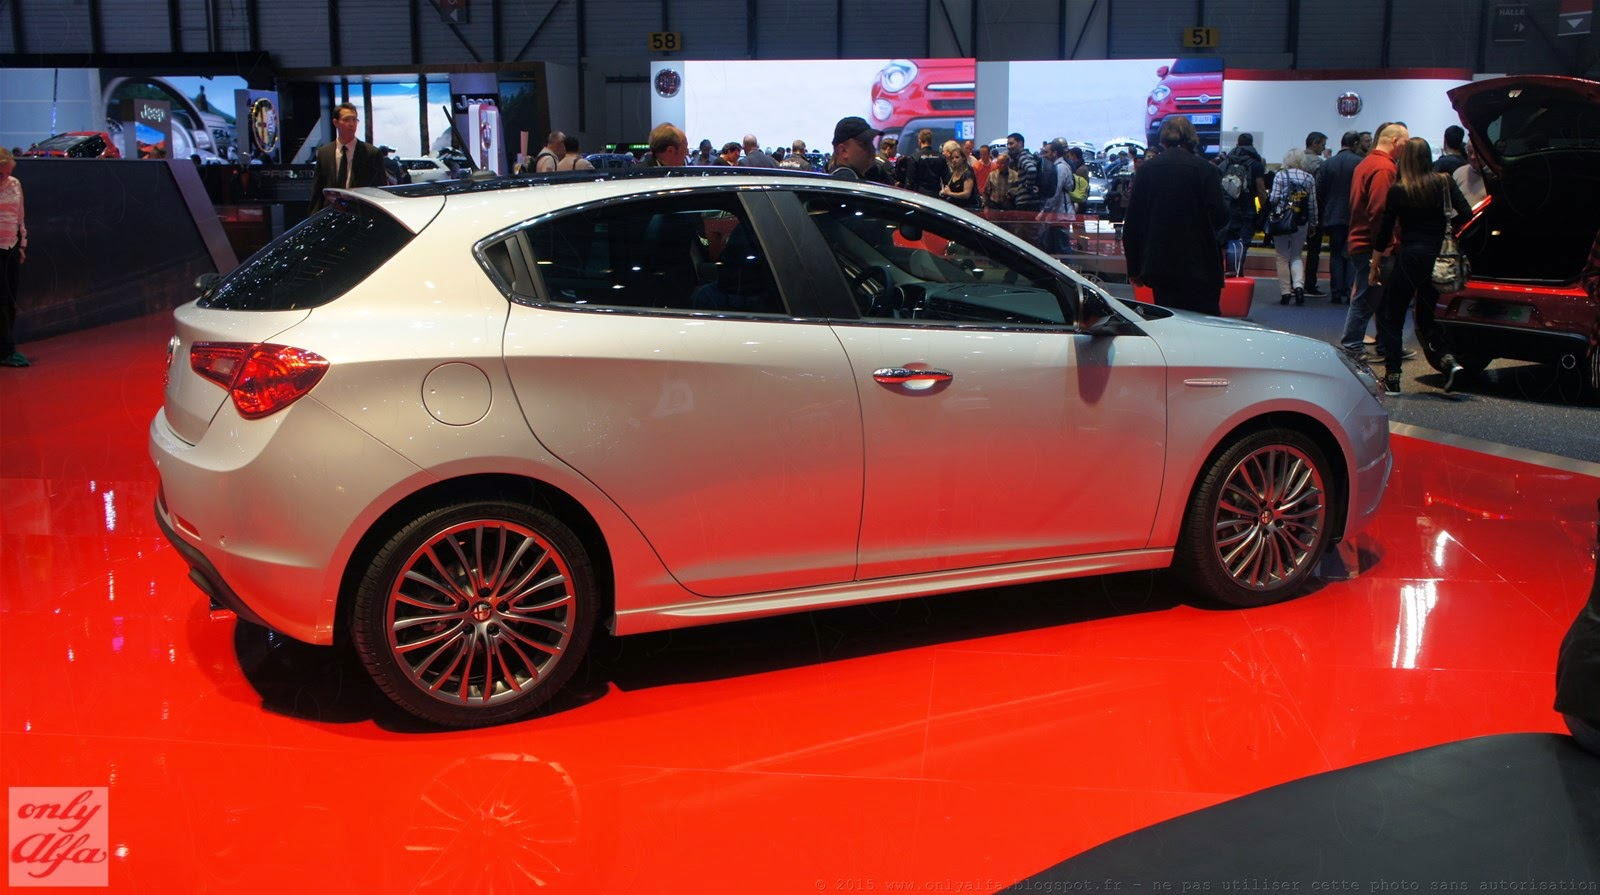 Only alfa salon de gen ve 2015 alfa romeo giulietta - Geneve 2015 salon ...